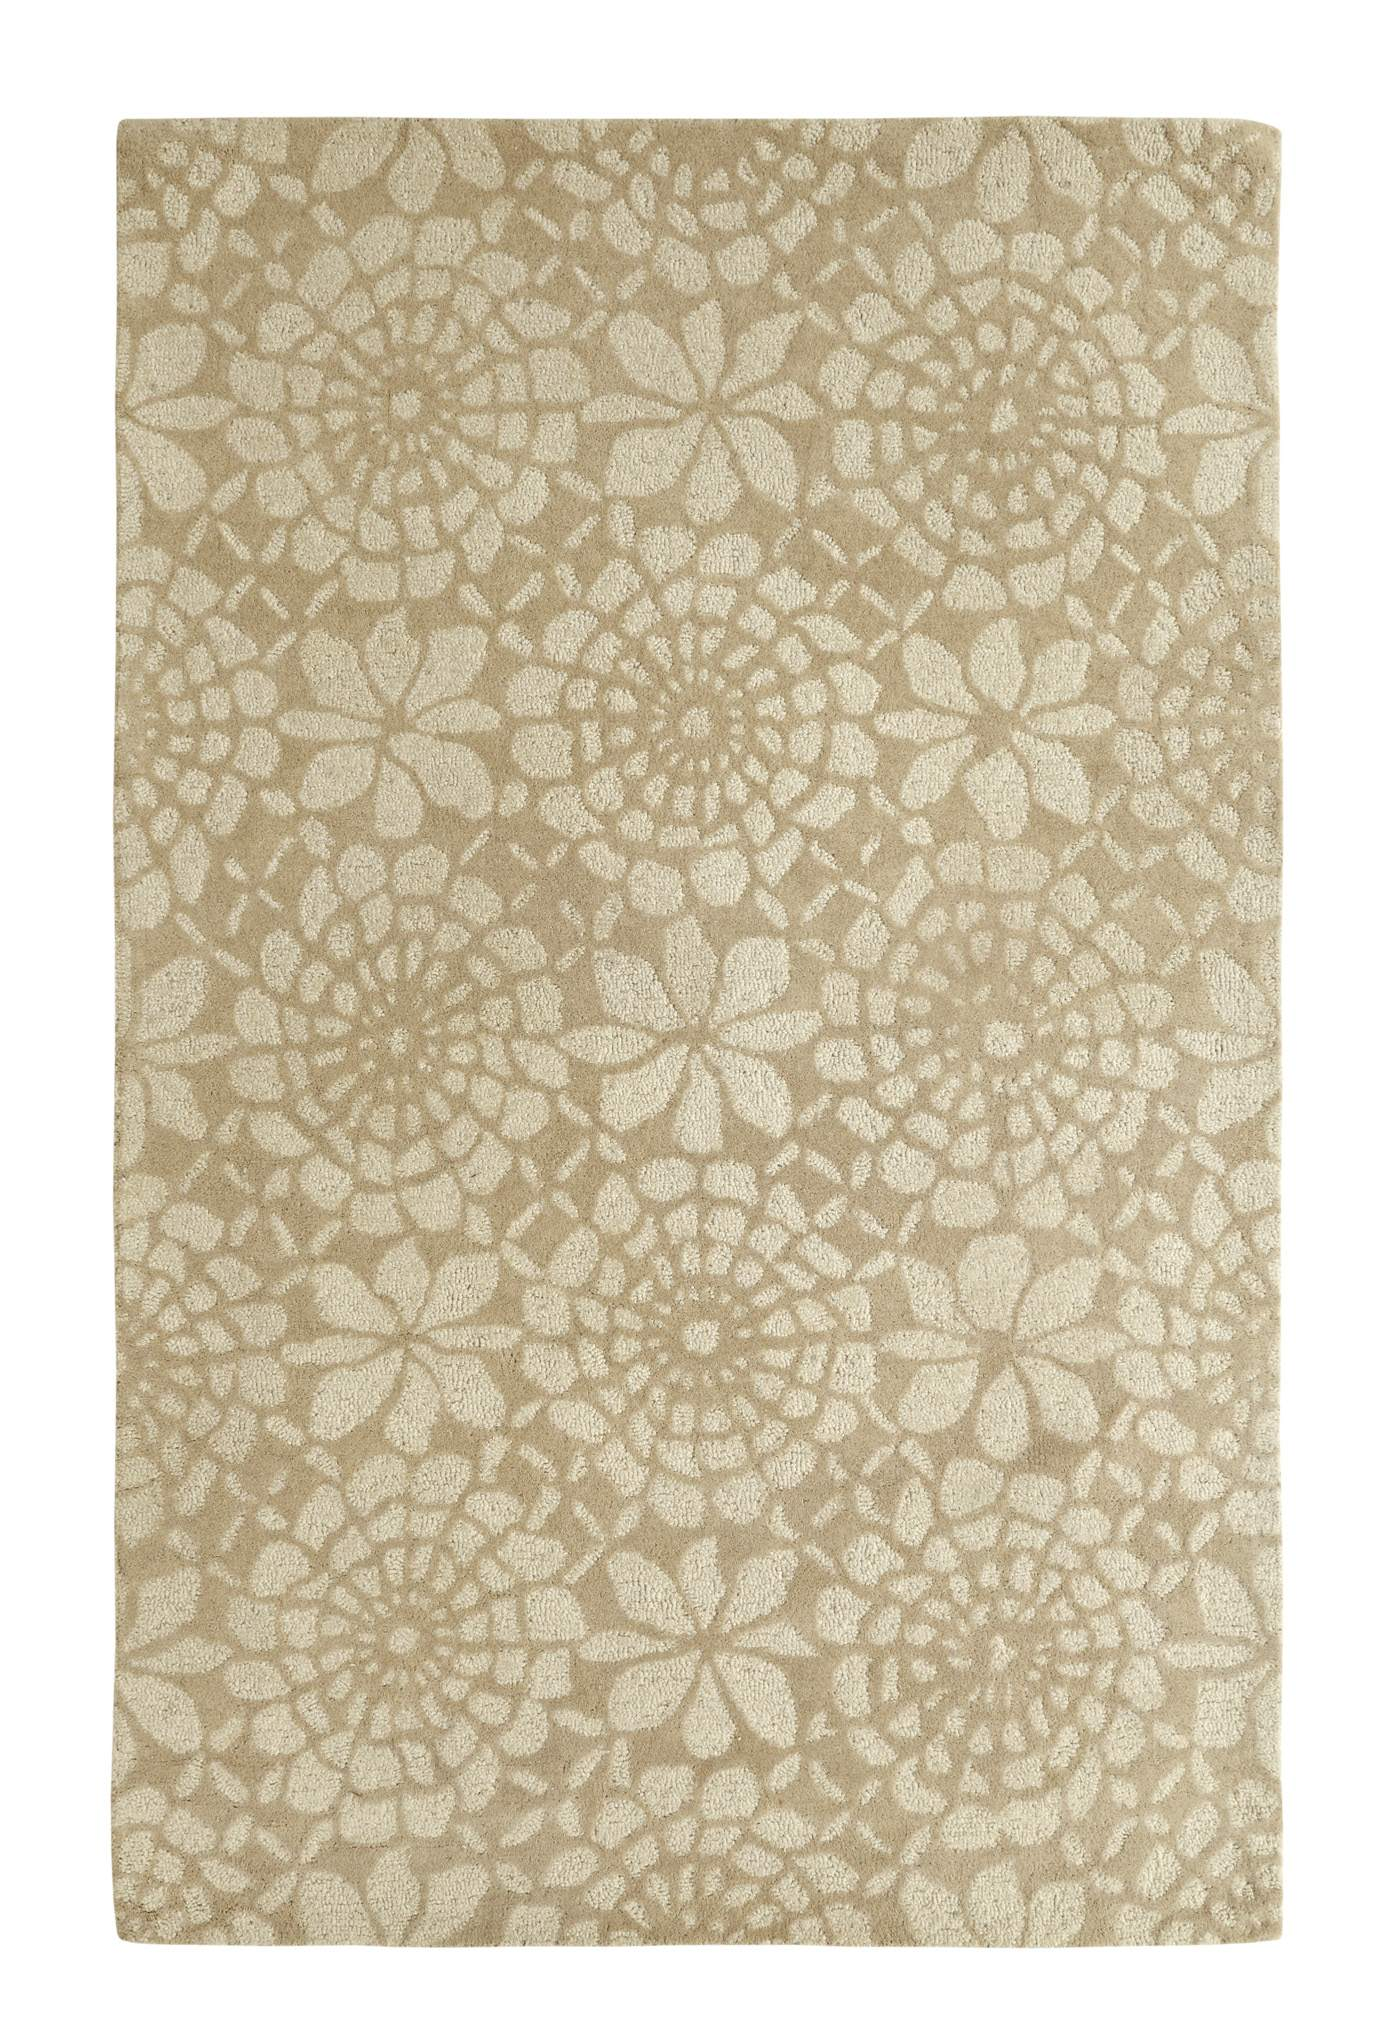 Dynamic Rugs Palace Floral Ivory/beige 5333 Area Rug